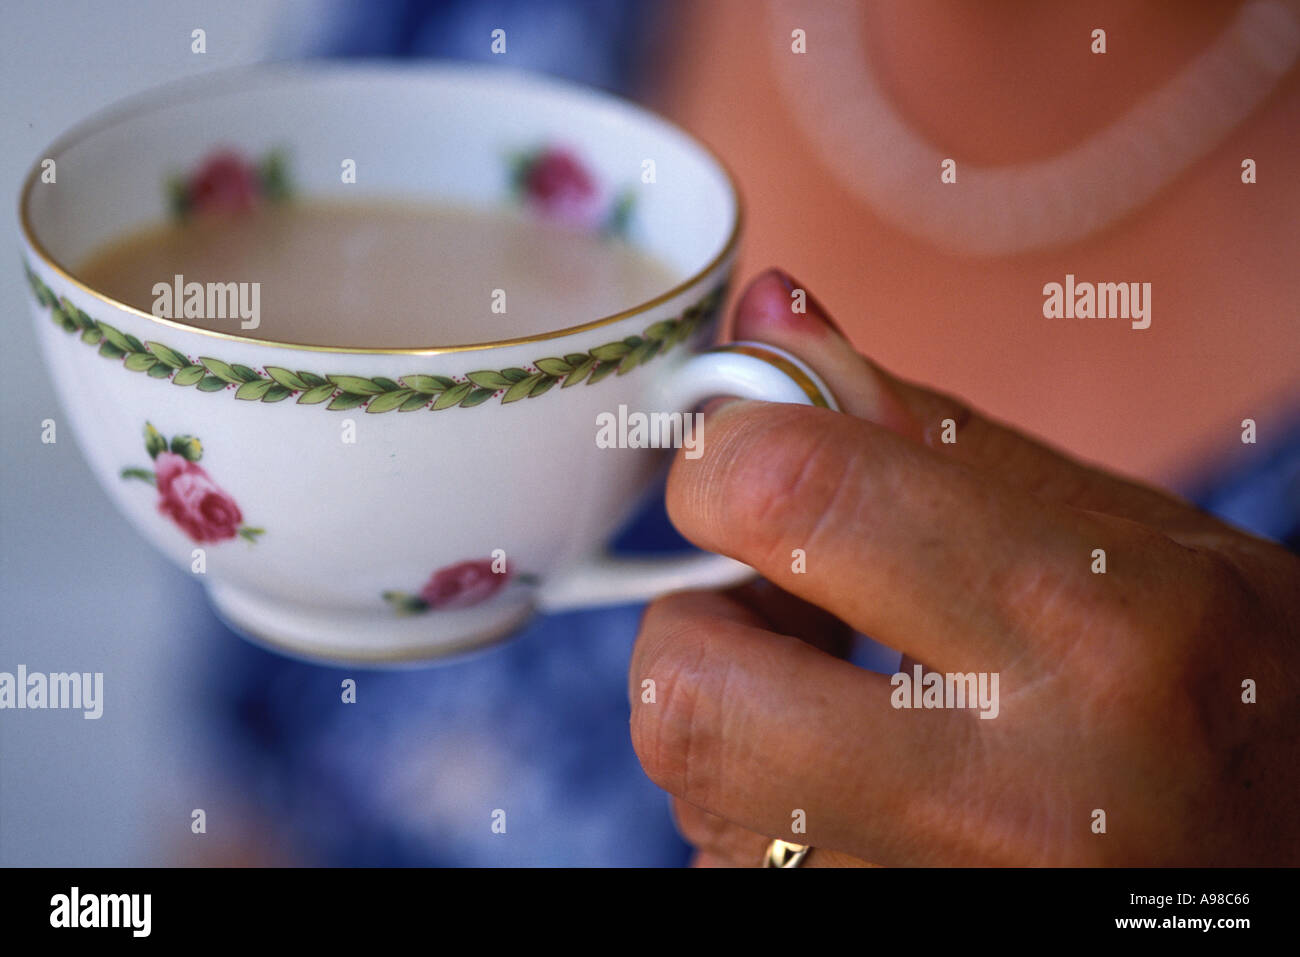 Food, Woman drinking tea - Stock Image